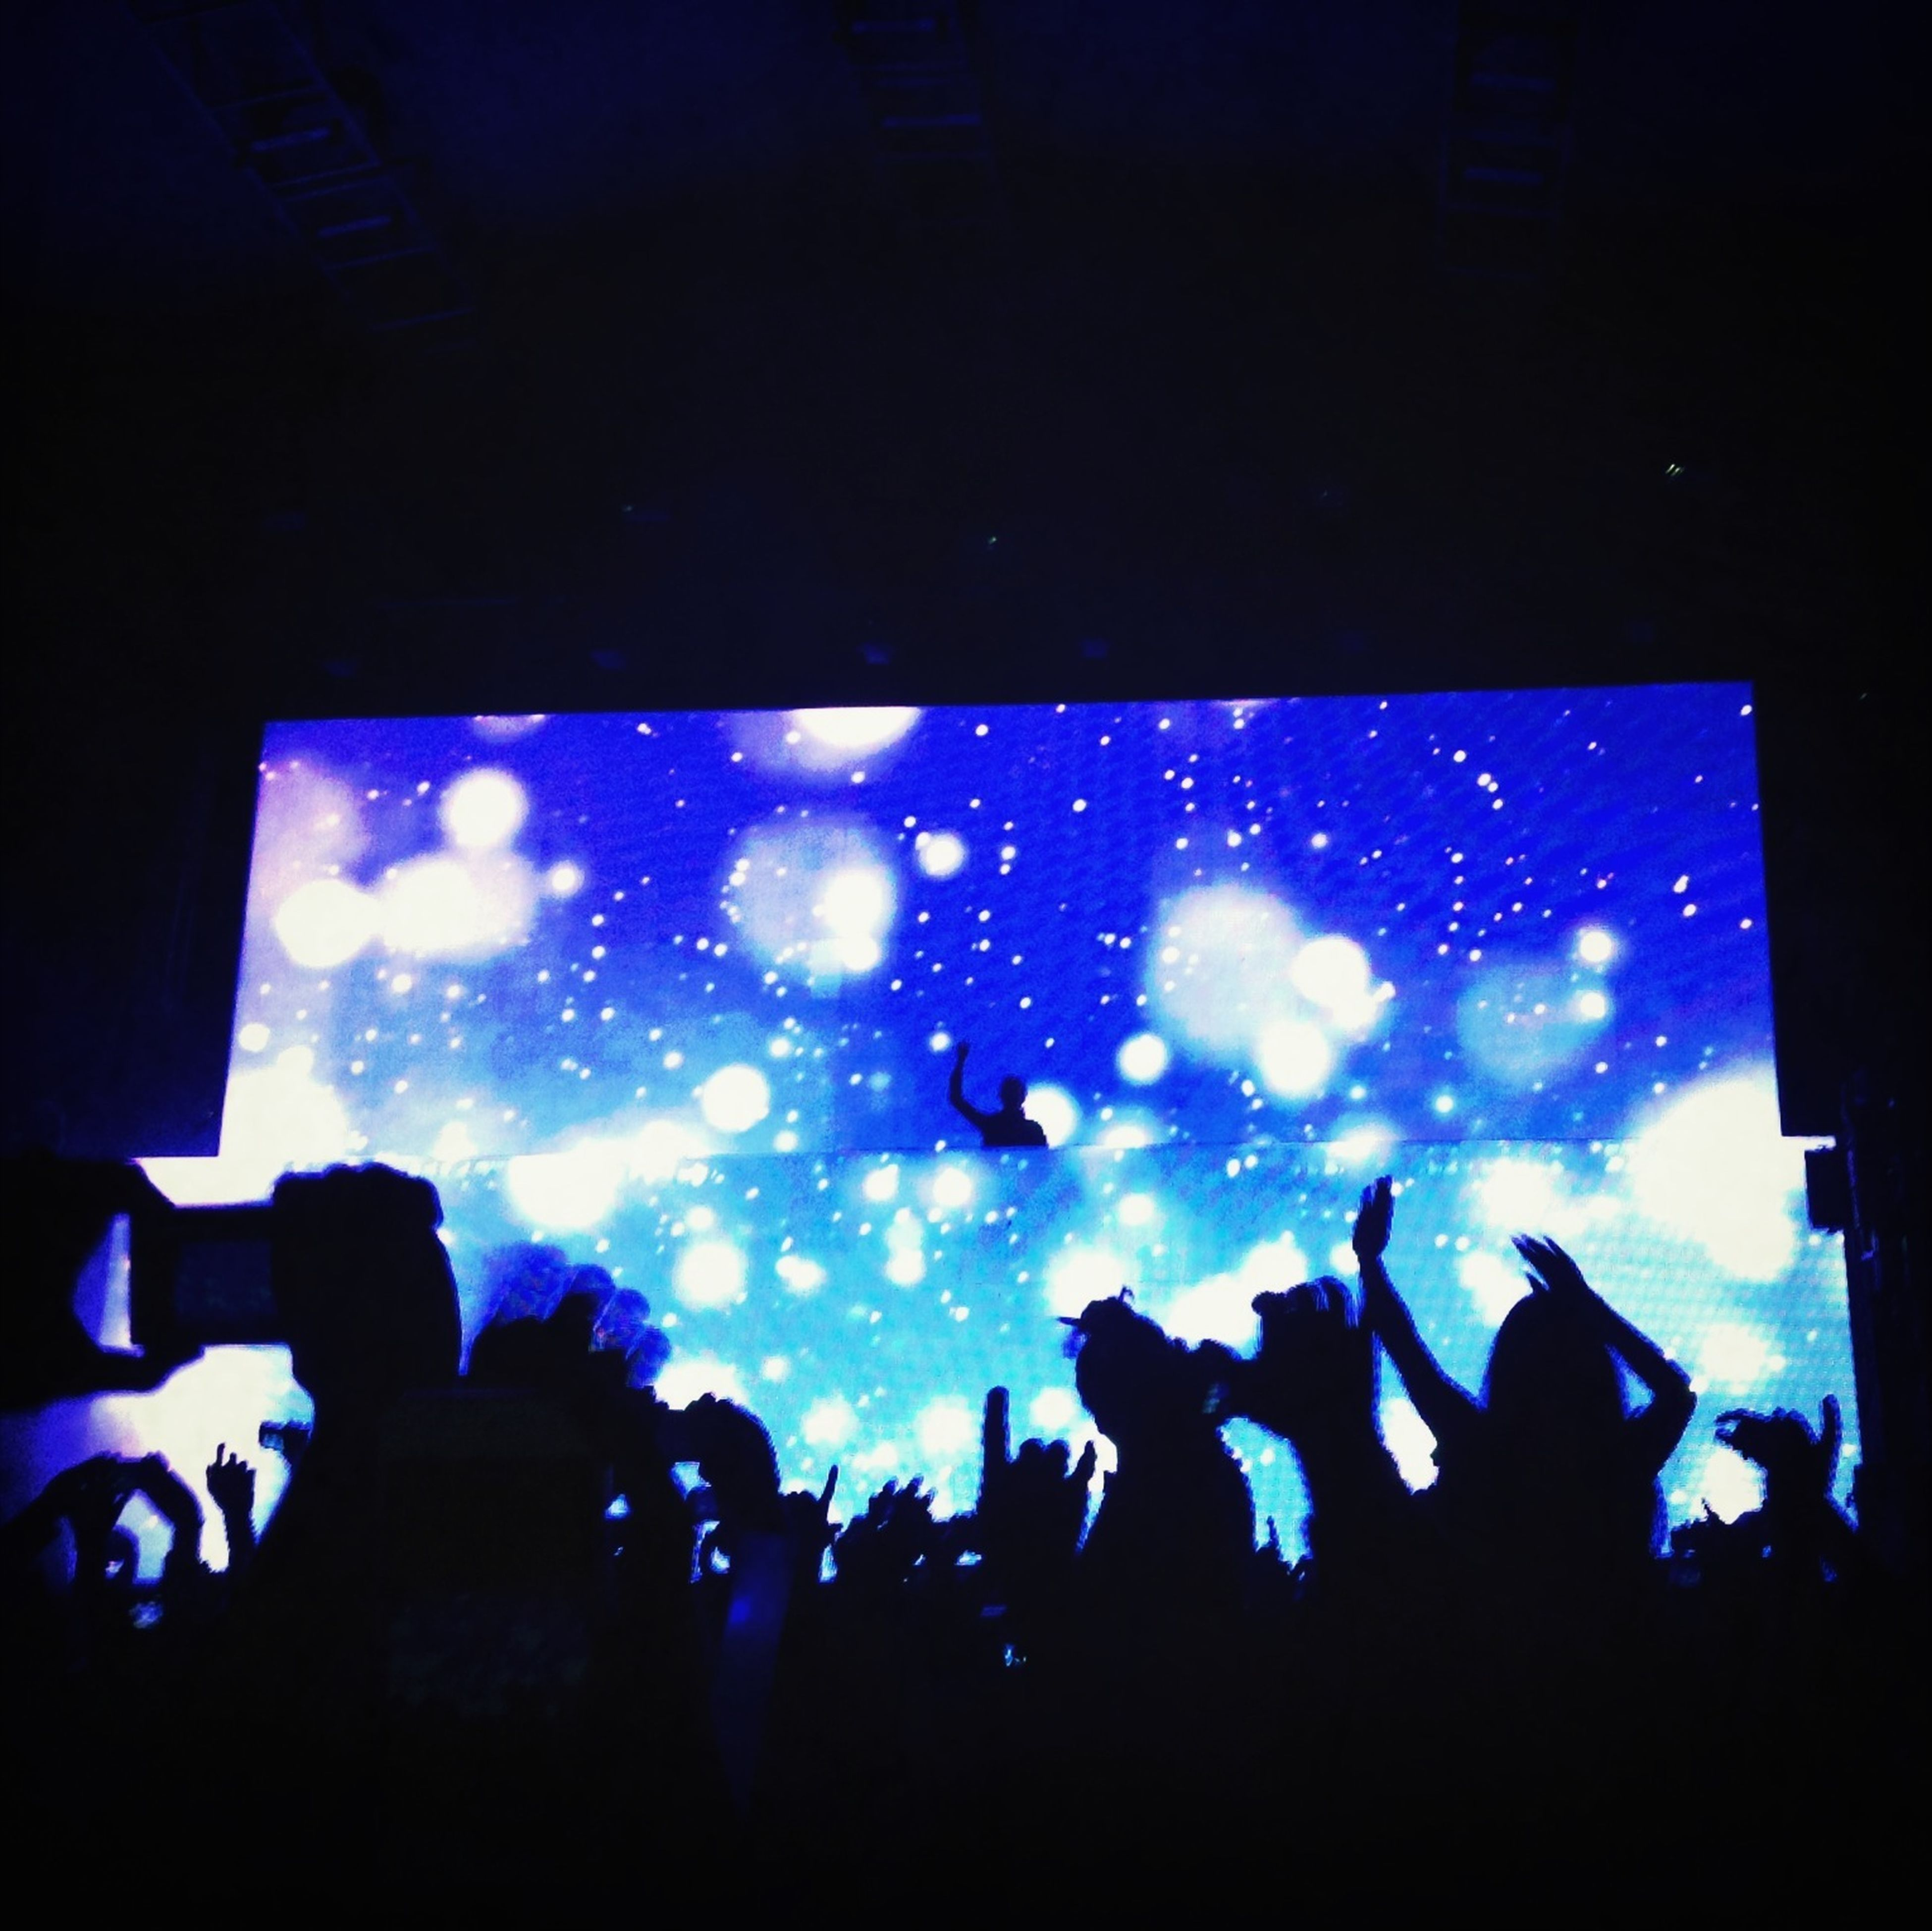 blue, silhouette, indoors, large group of people, night, illuminated, sky, men, crowd, leisure activity, nightlife, unrecognizable person, lifestyles, concert, person, glass - material, light - natural phenomenon, arts culture and entertainment, window